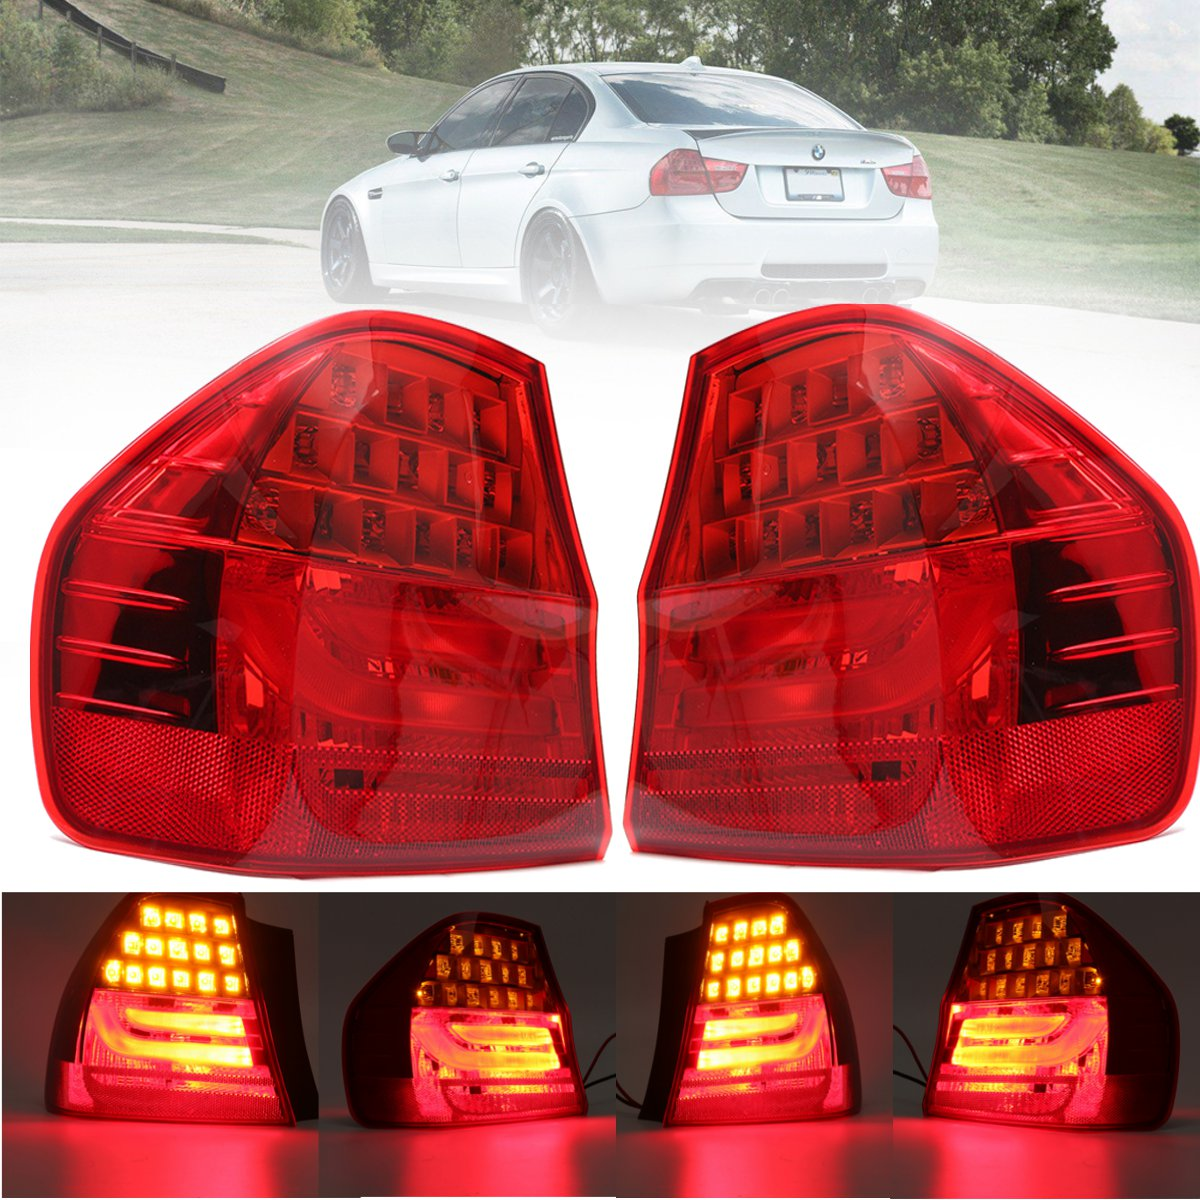 1Pcs Car Rear Tail Lamp Light Led Light Left / Right Side For BMW 3 SERIES E90 2008 2009 2010 2011 1 pc outer rear tail light lamp taillamp taillight rh right side gr1a 51 170 for mazda 6 2005 2010 gg